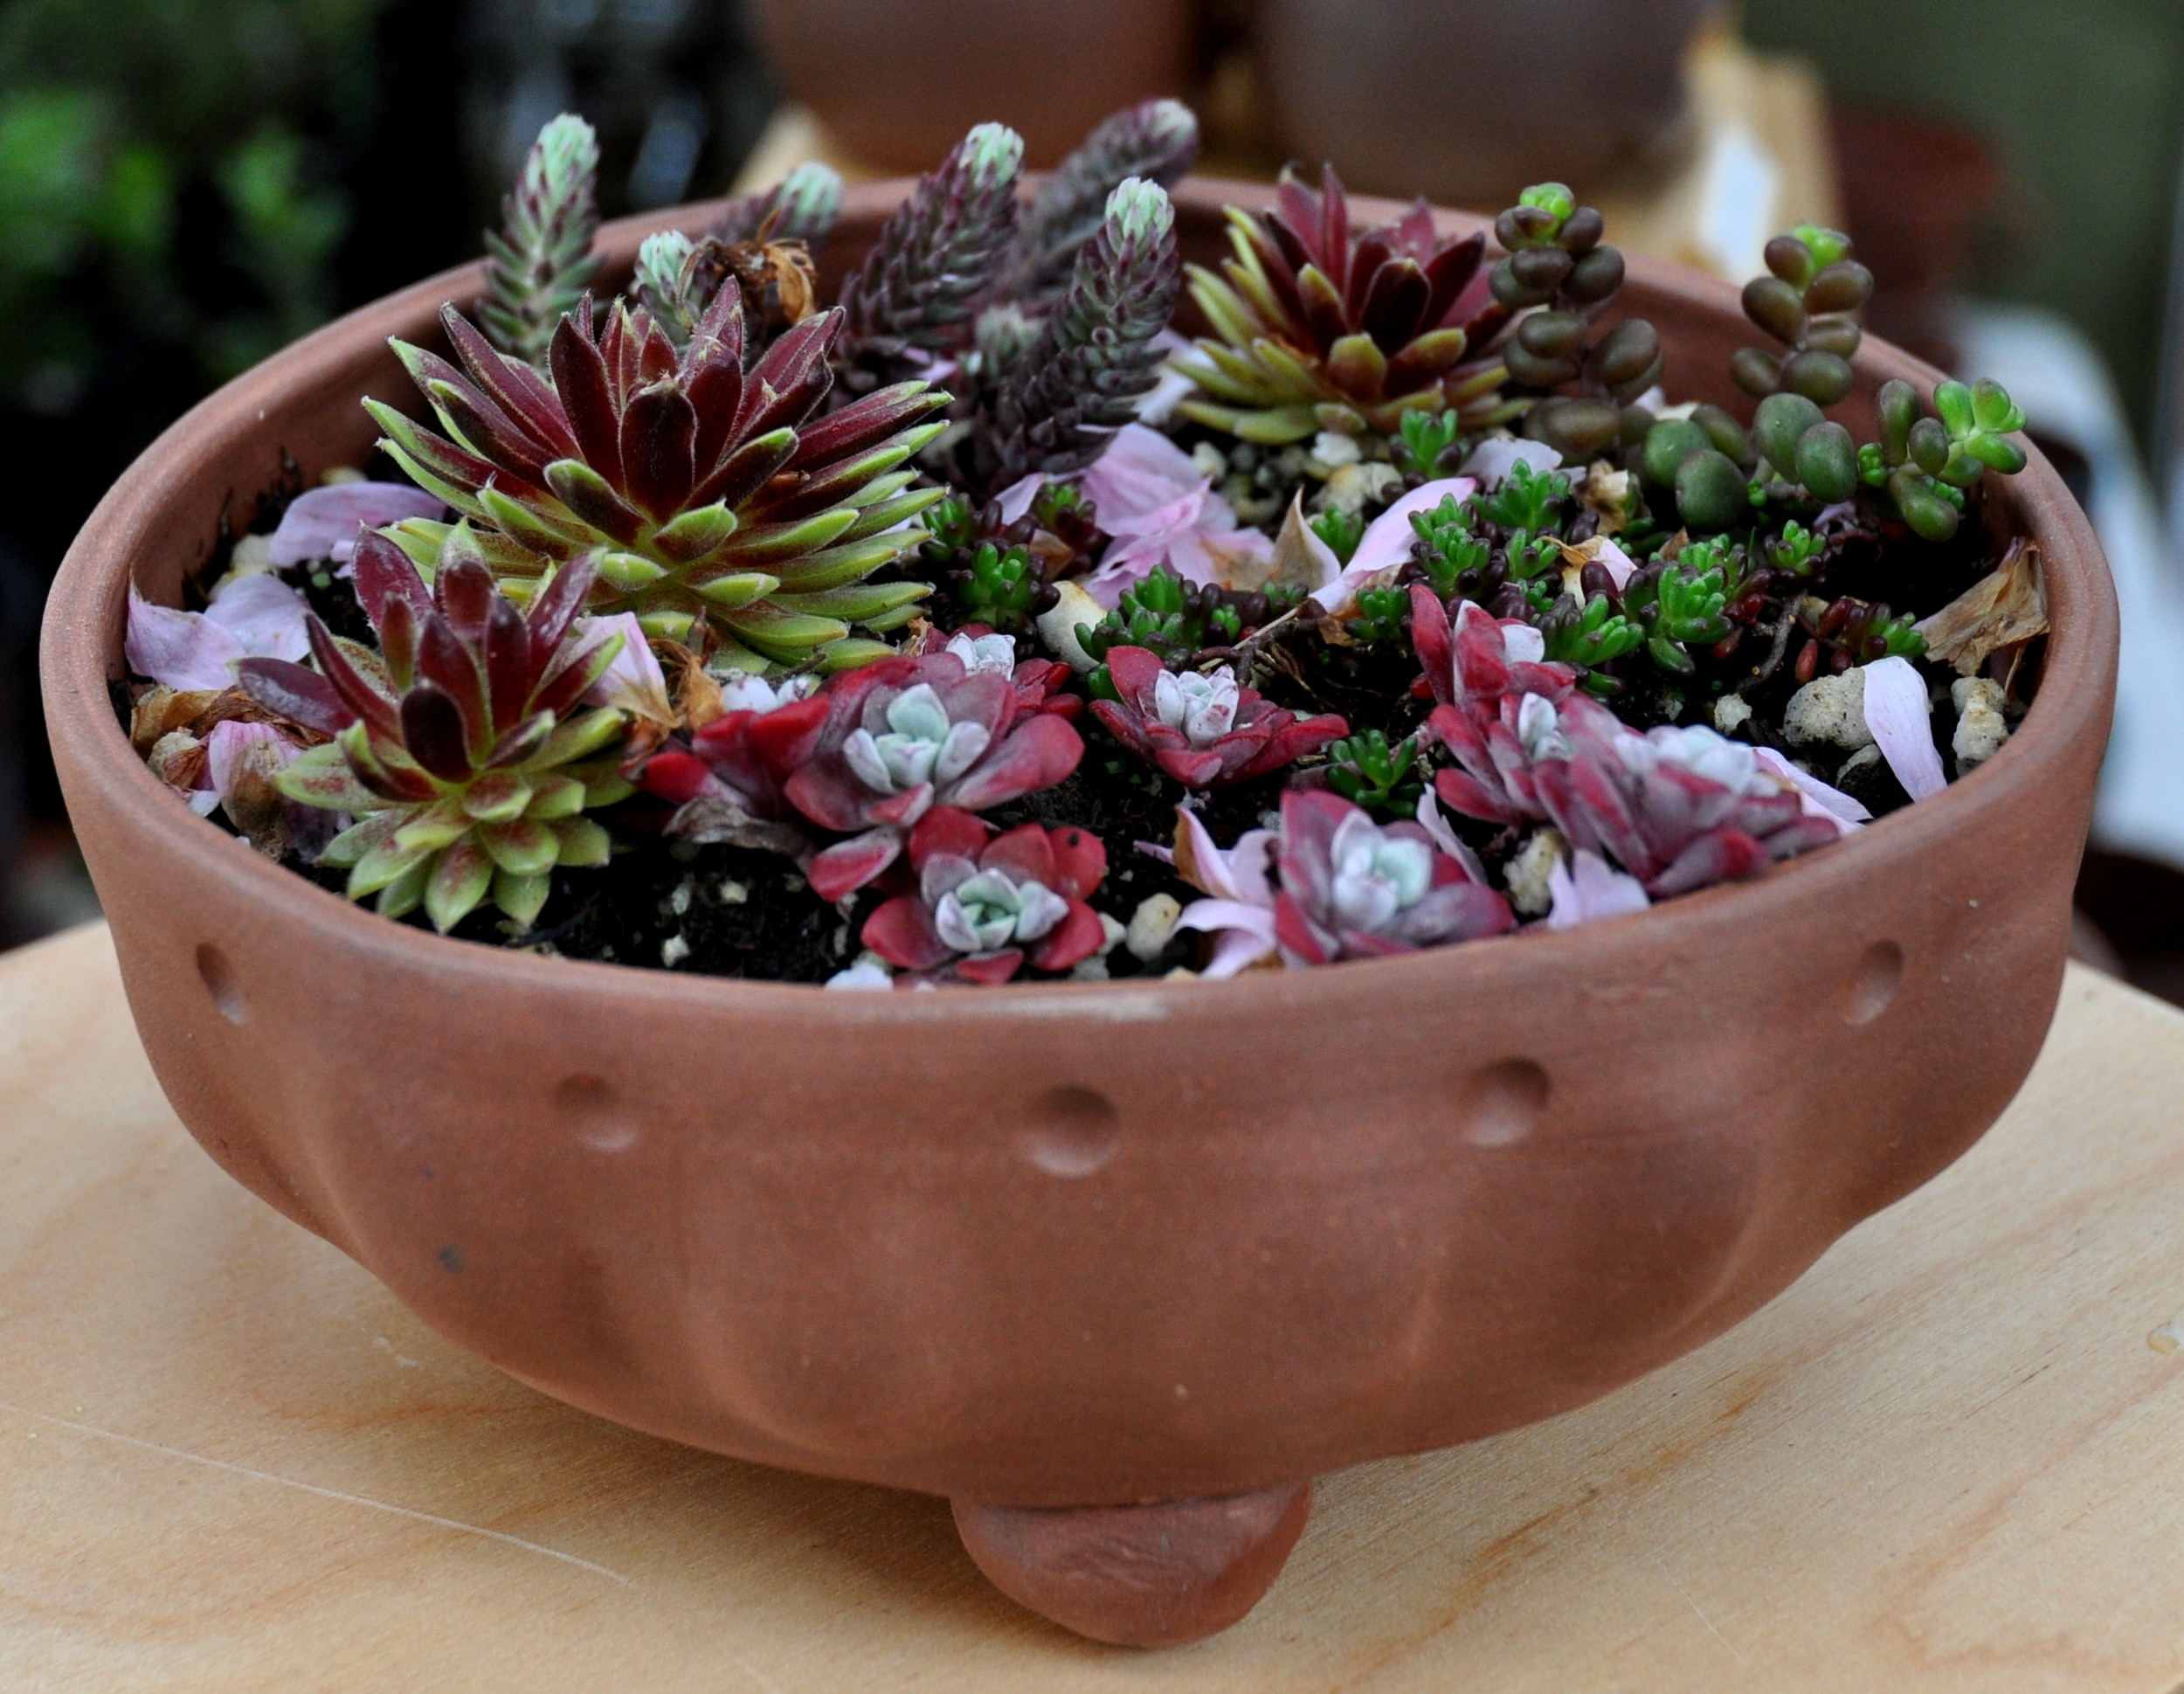 Phocas Farms succulents nestled in a Daily Bird Pottery planter. Photo copyright 2013 by Zachary D. Lyons.